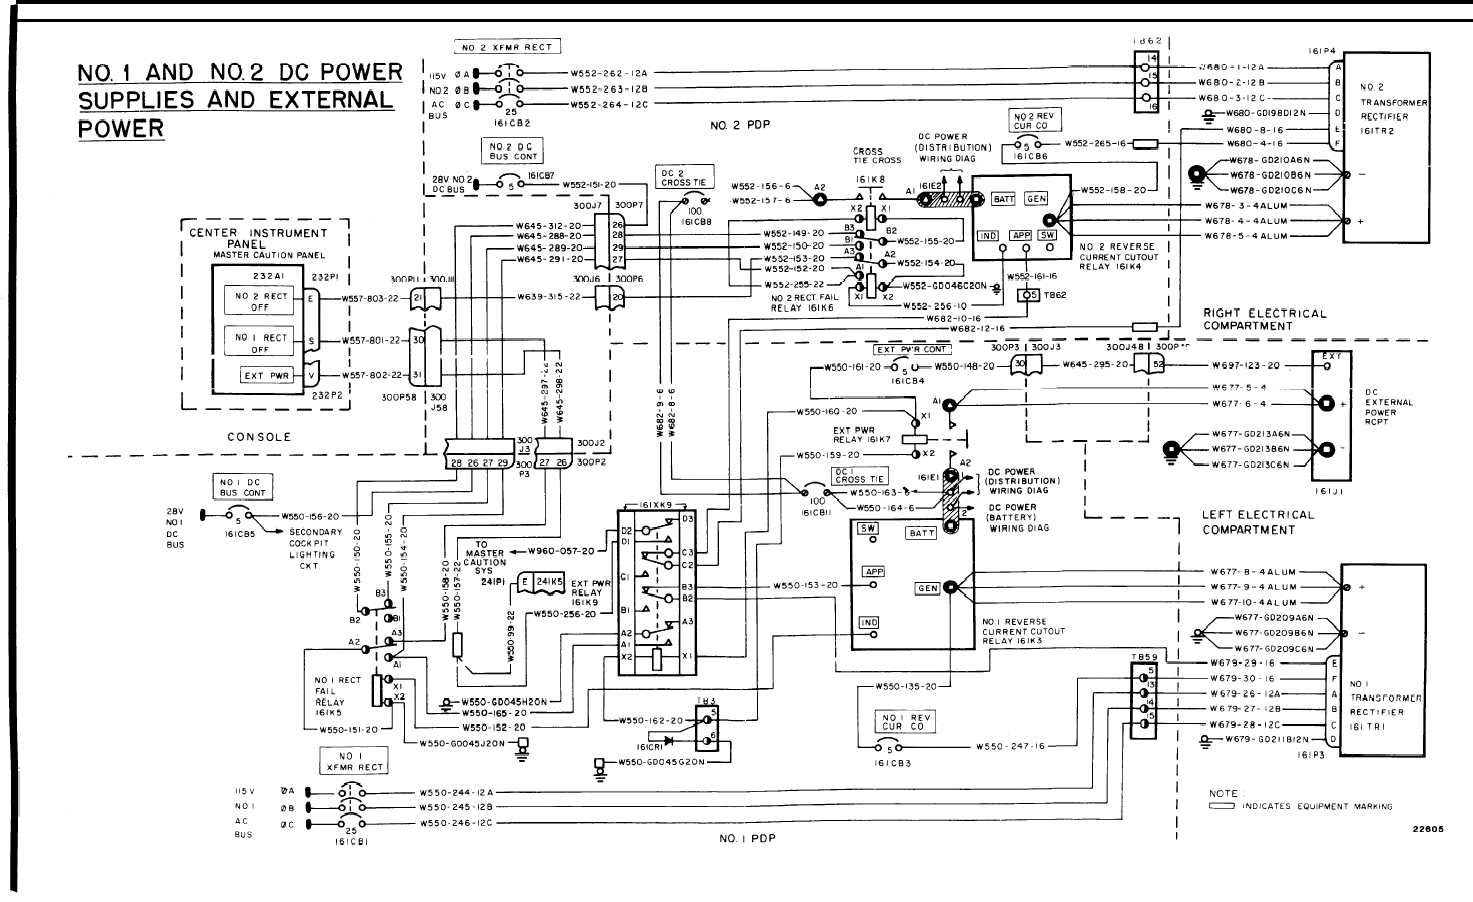 Dc Power System Wiring Diagram Tm 55 1520 240 T 3 968 2 Line Phone Systems Pdp 16 325 Helicopters With Engine Air Particle Separator Provisions 142 Change